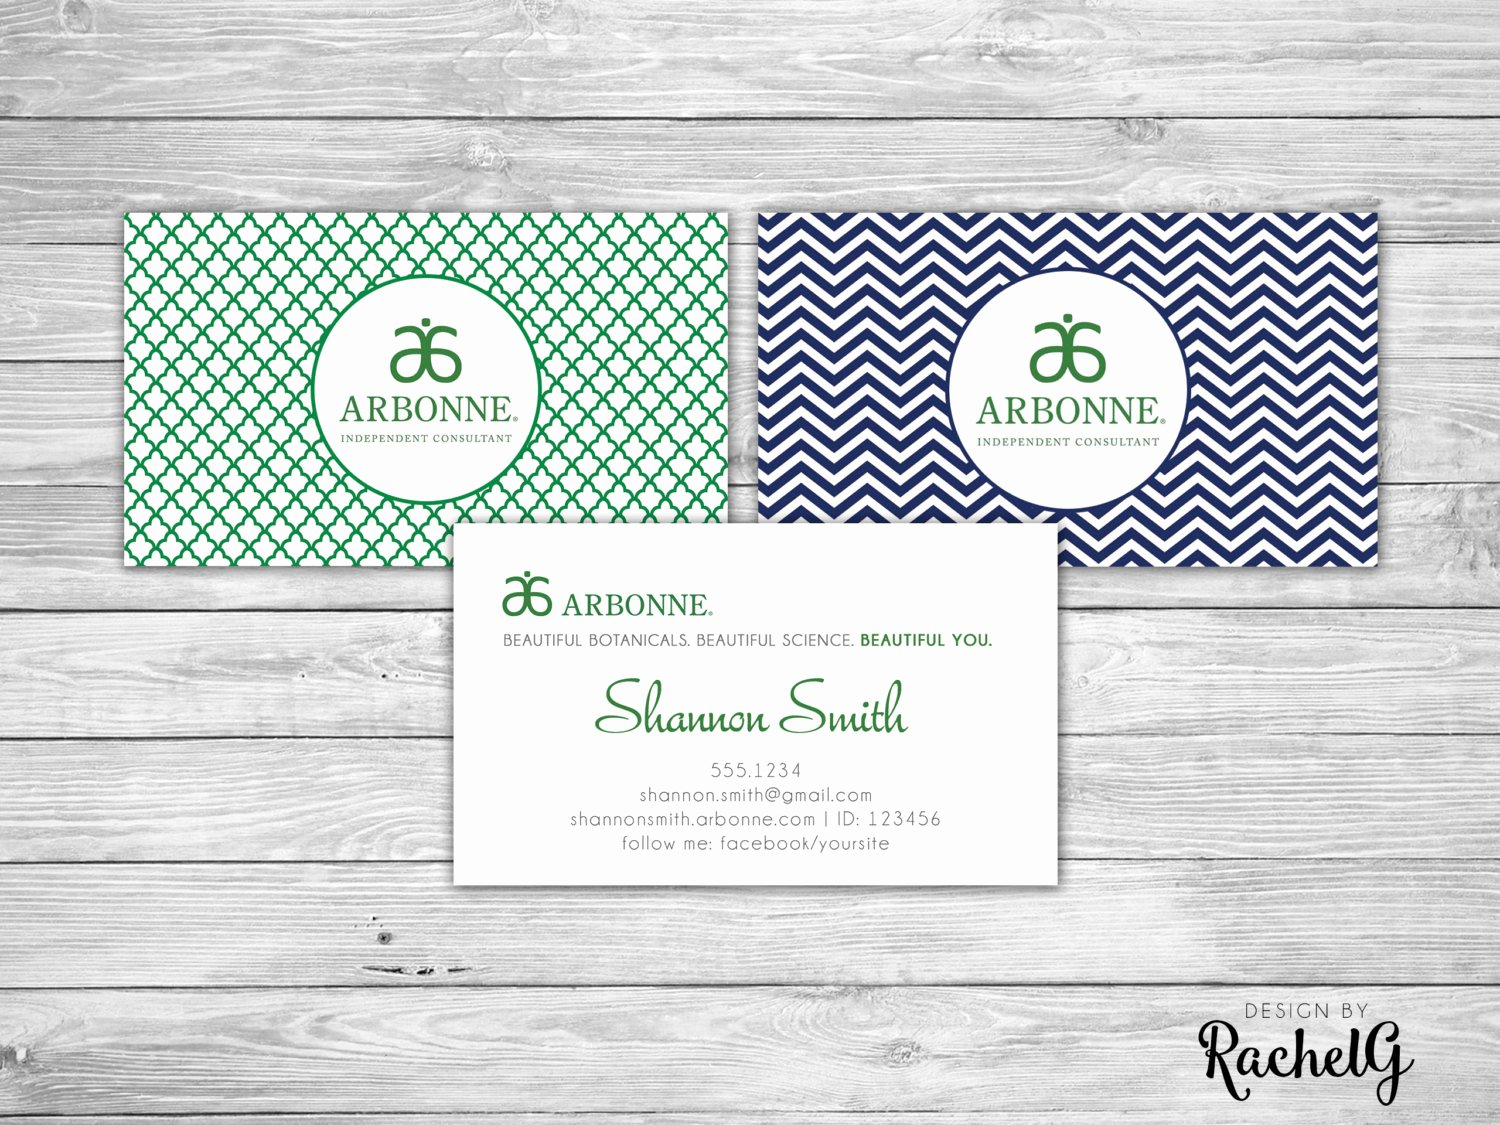 Arbonne Business Cards Template Fresh Arbonne Independent Consultant Custom Business Card Digital